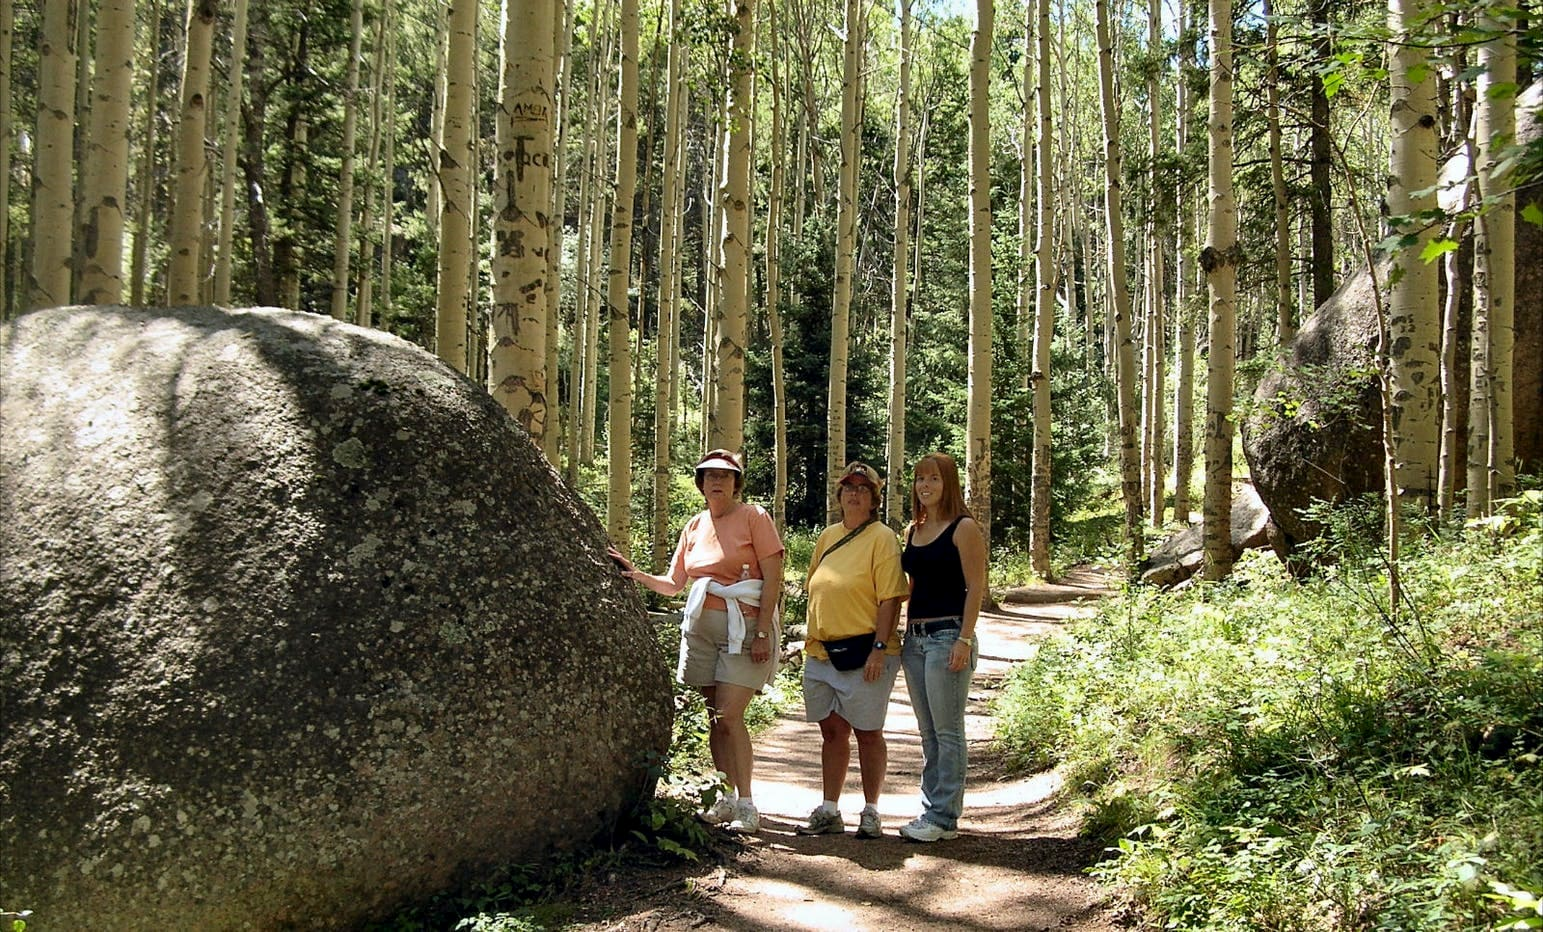 Group of three women hikers standing beside a boulder in the forest.